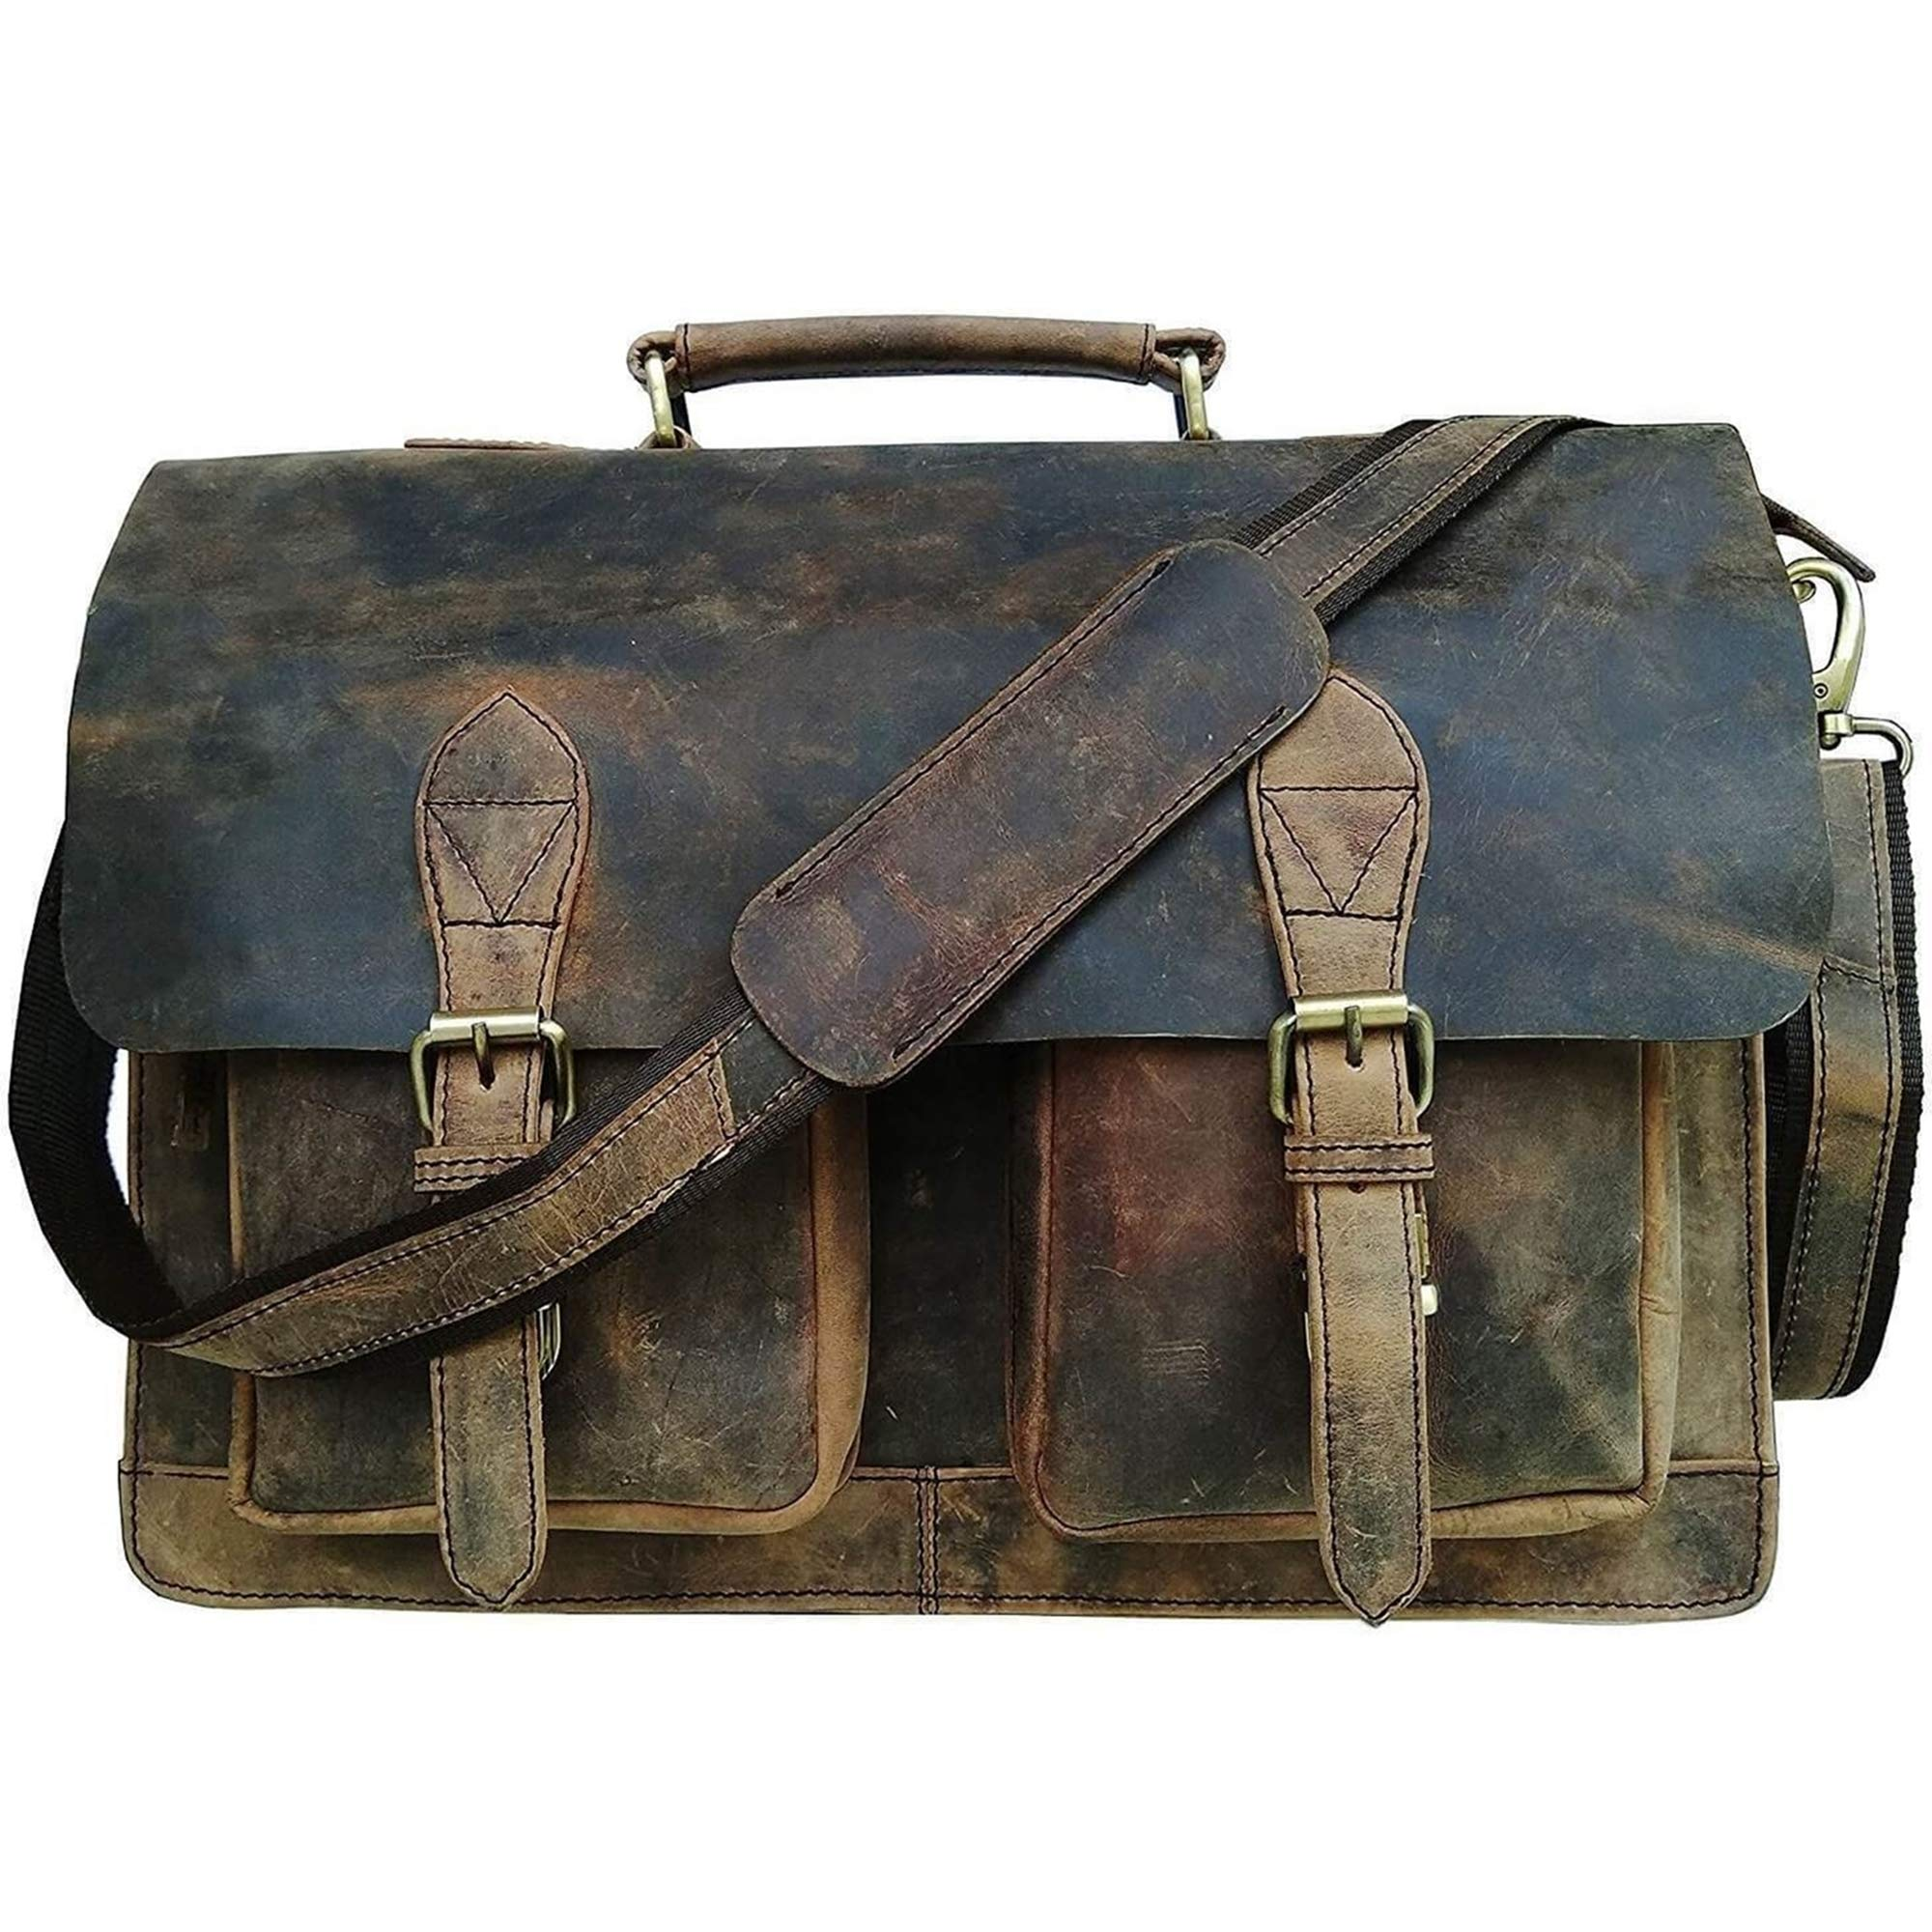 Retro Buffalo Hunter Leather Laptop Messenger Bag Office Briefcase College Bag by Urban Hide (18'') by Urban Hide (Image #2)